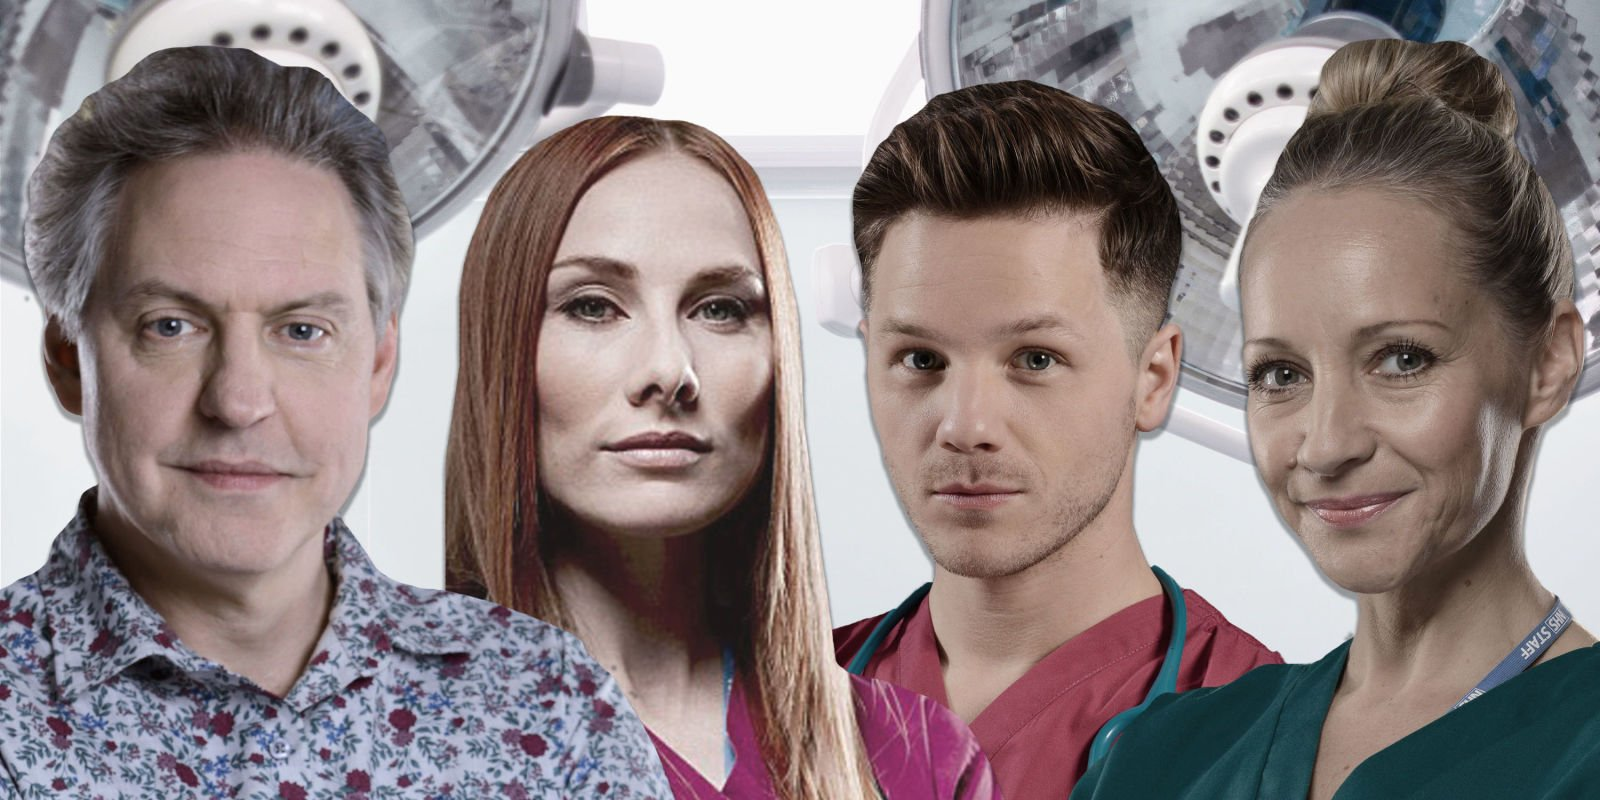 Who will die in Holby City? 7 possible candidates as the show prepares to kill off a character